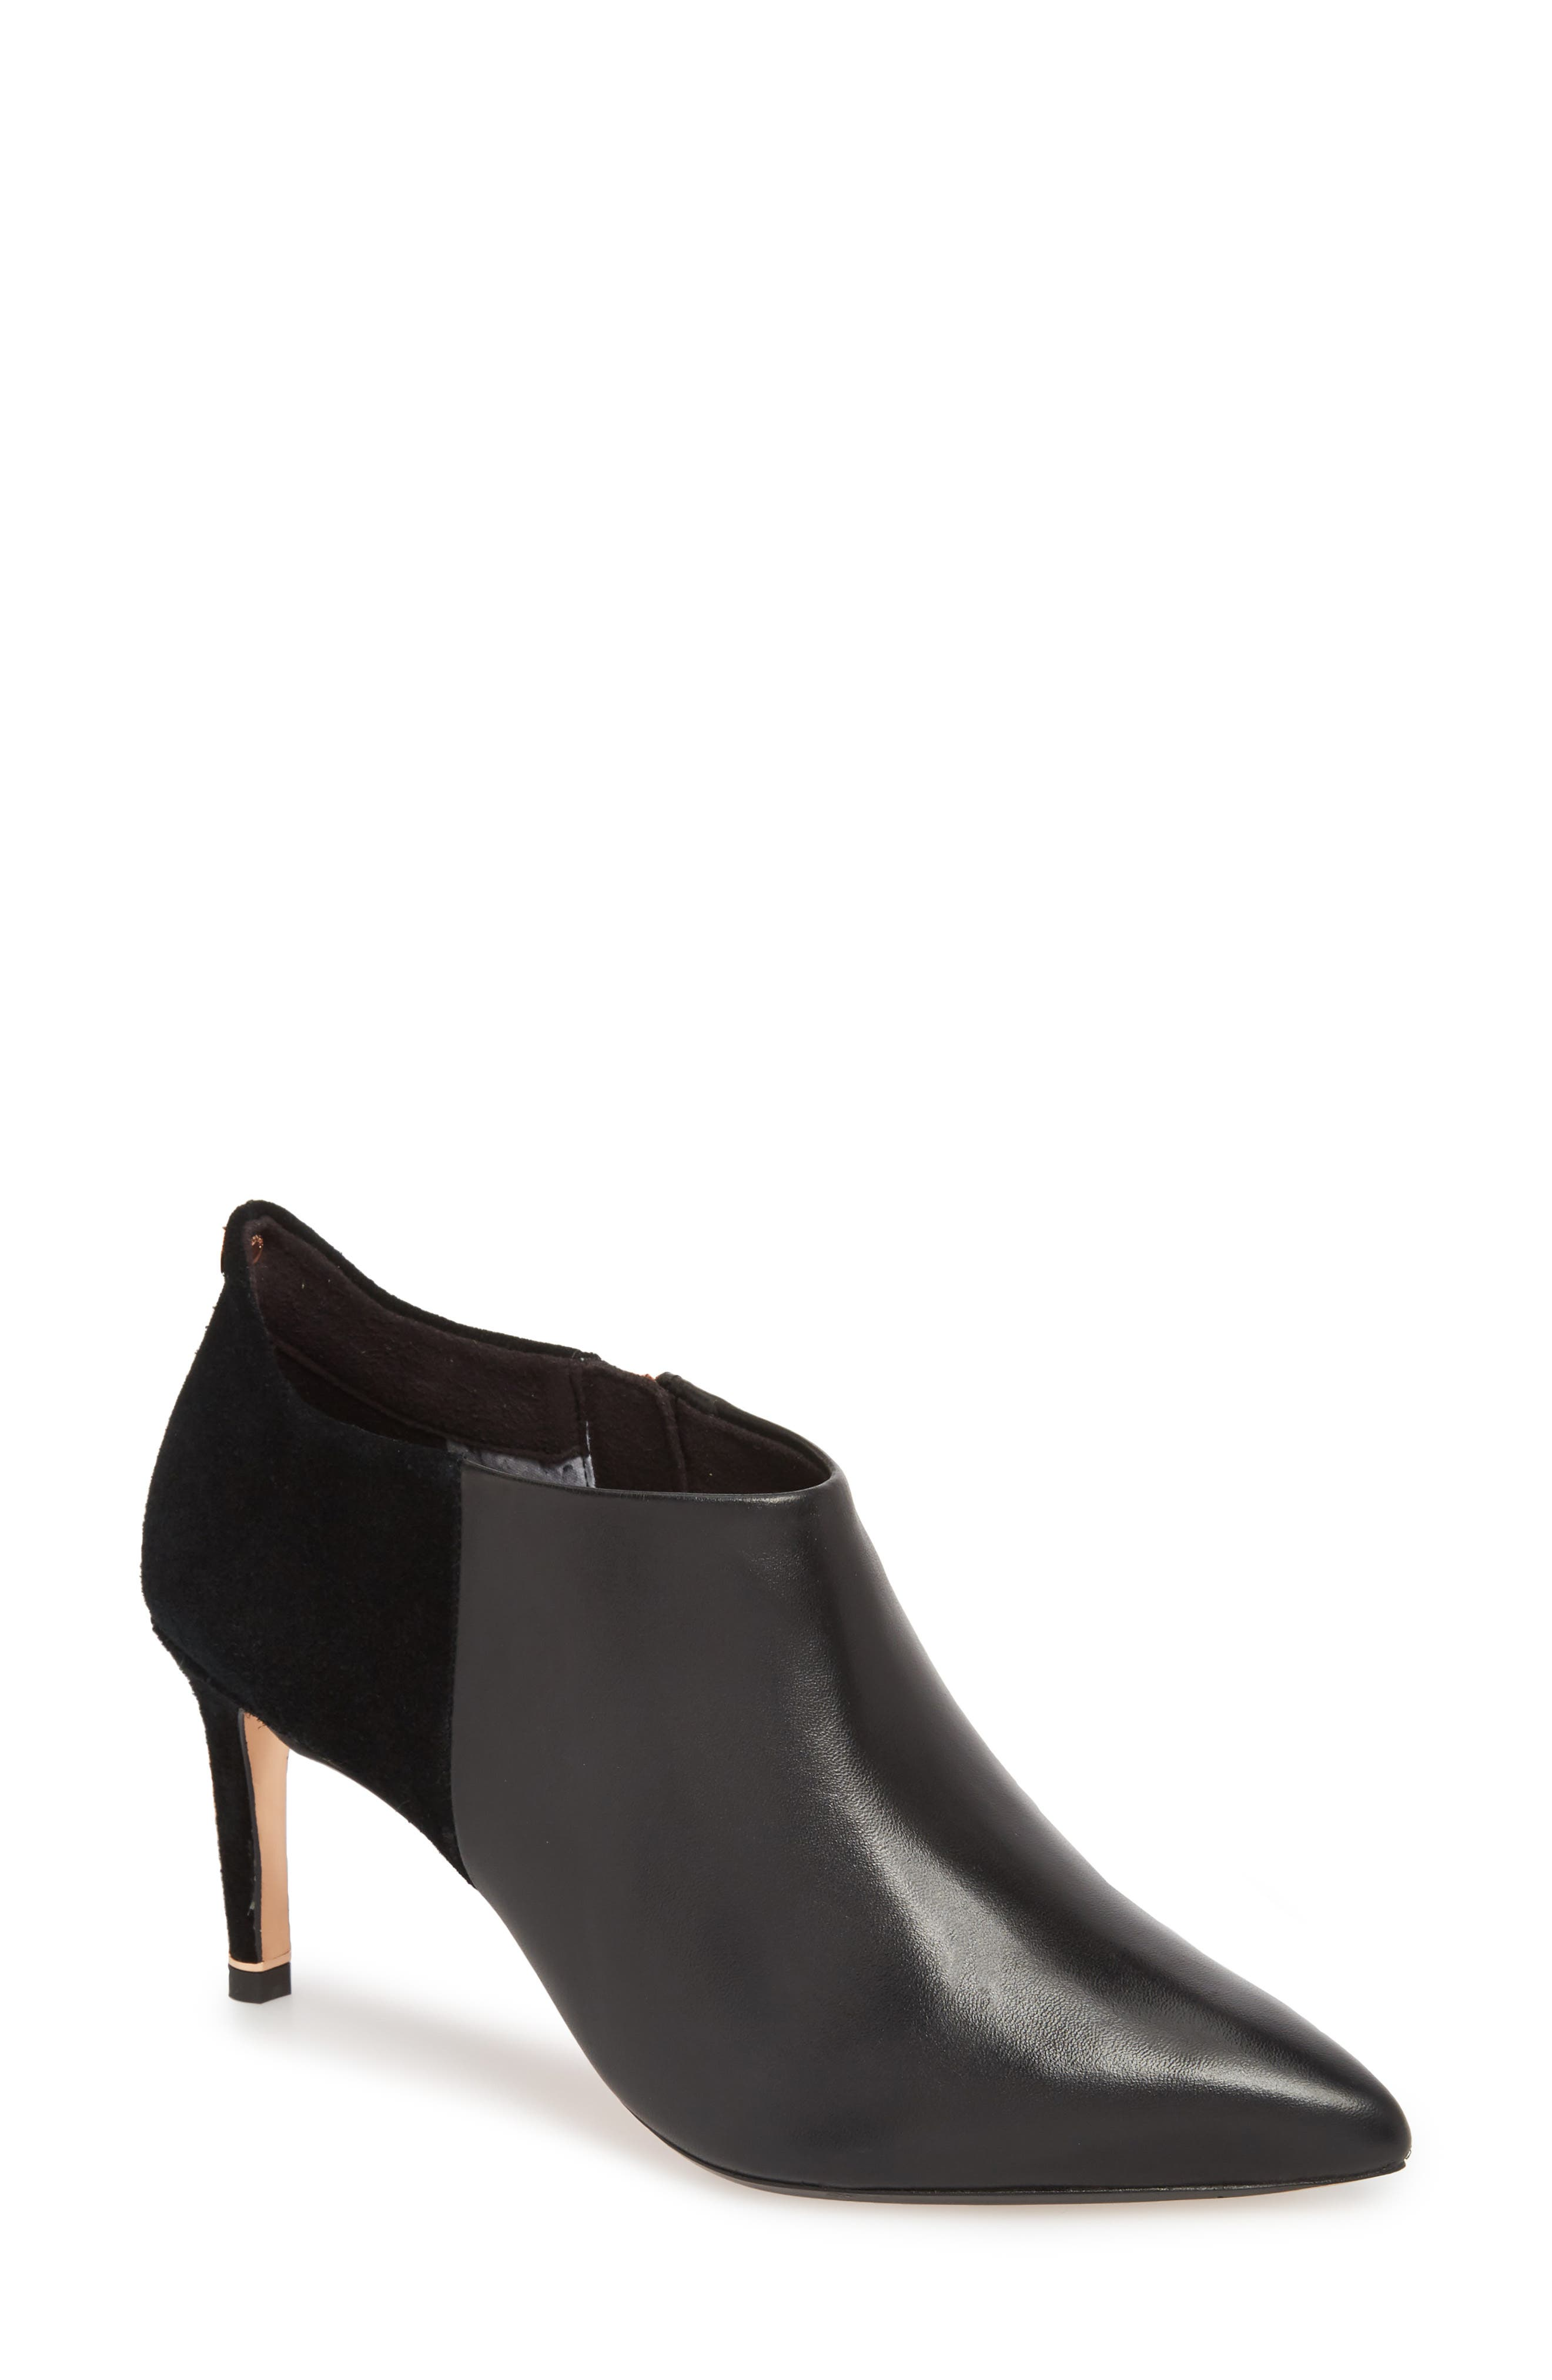 Akasha 2 Bootie,                         Main,                         color, Black Leather